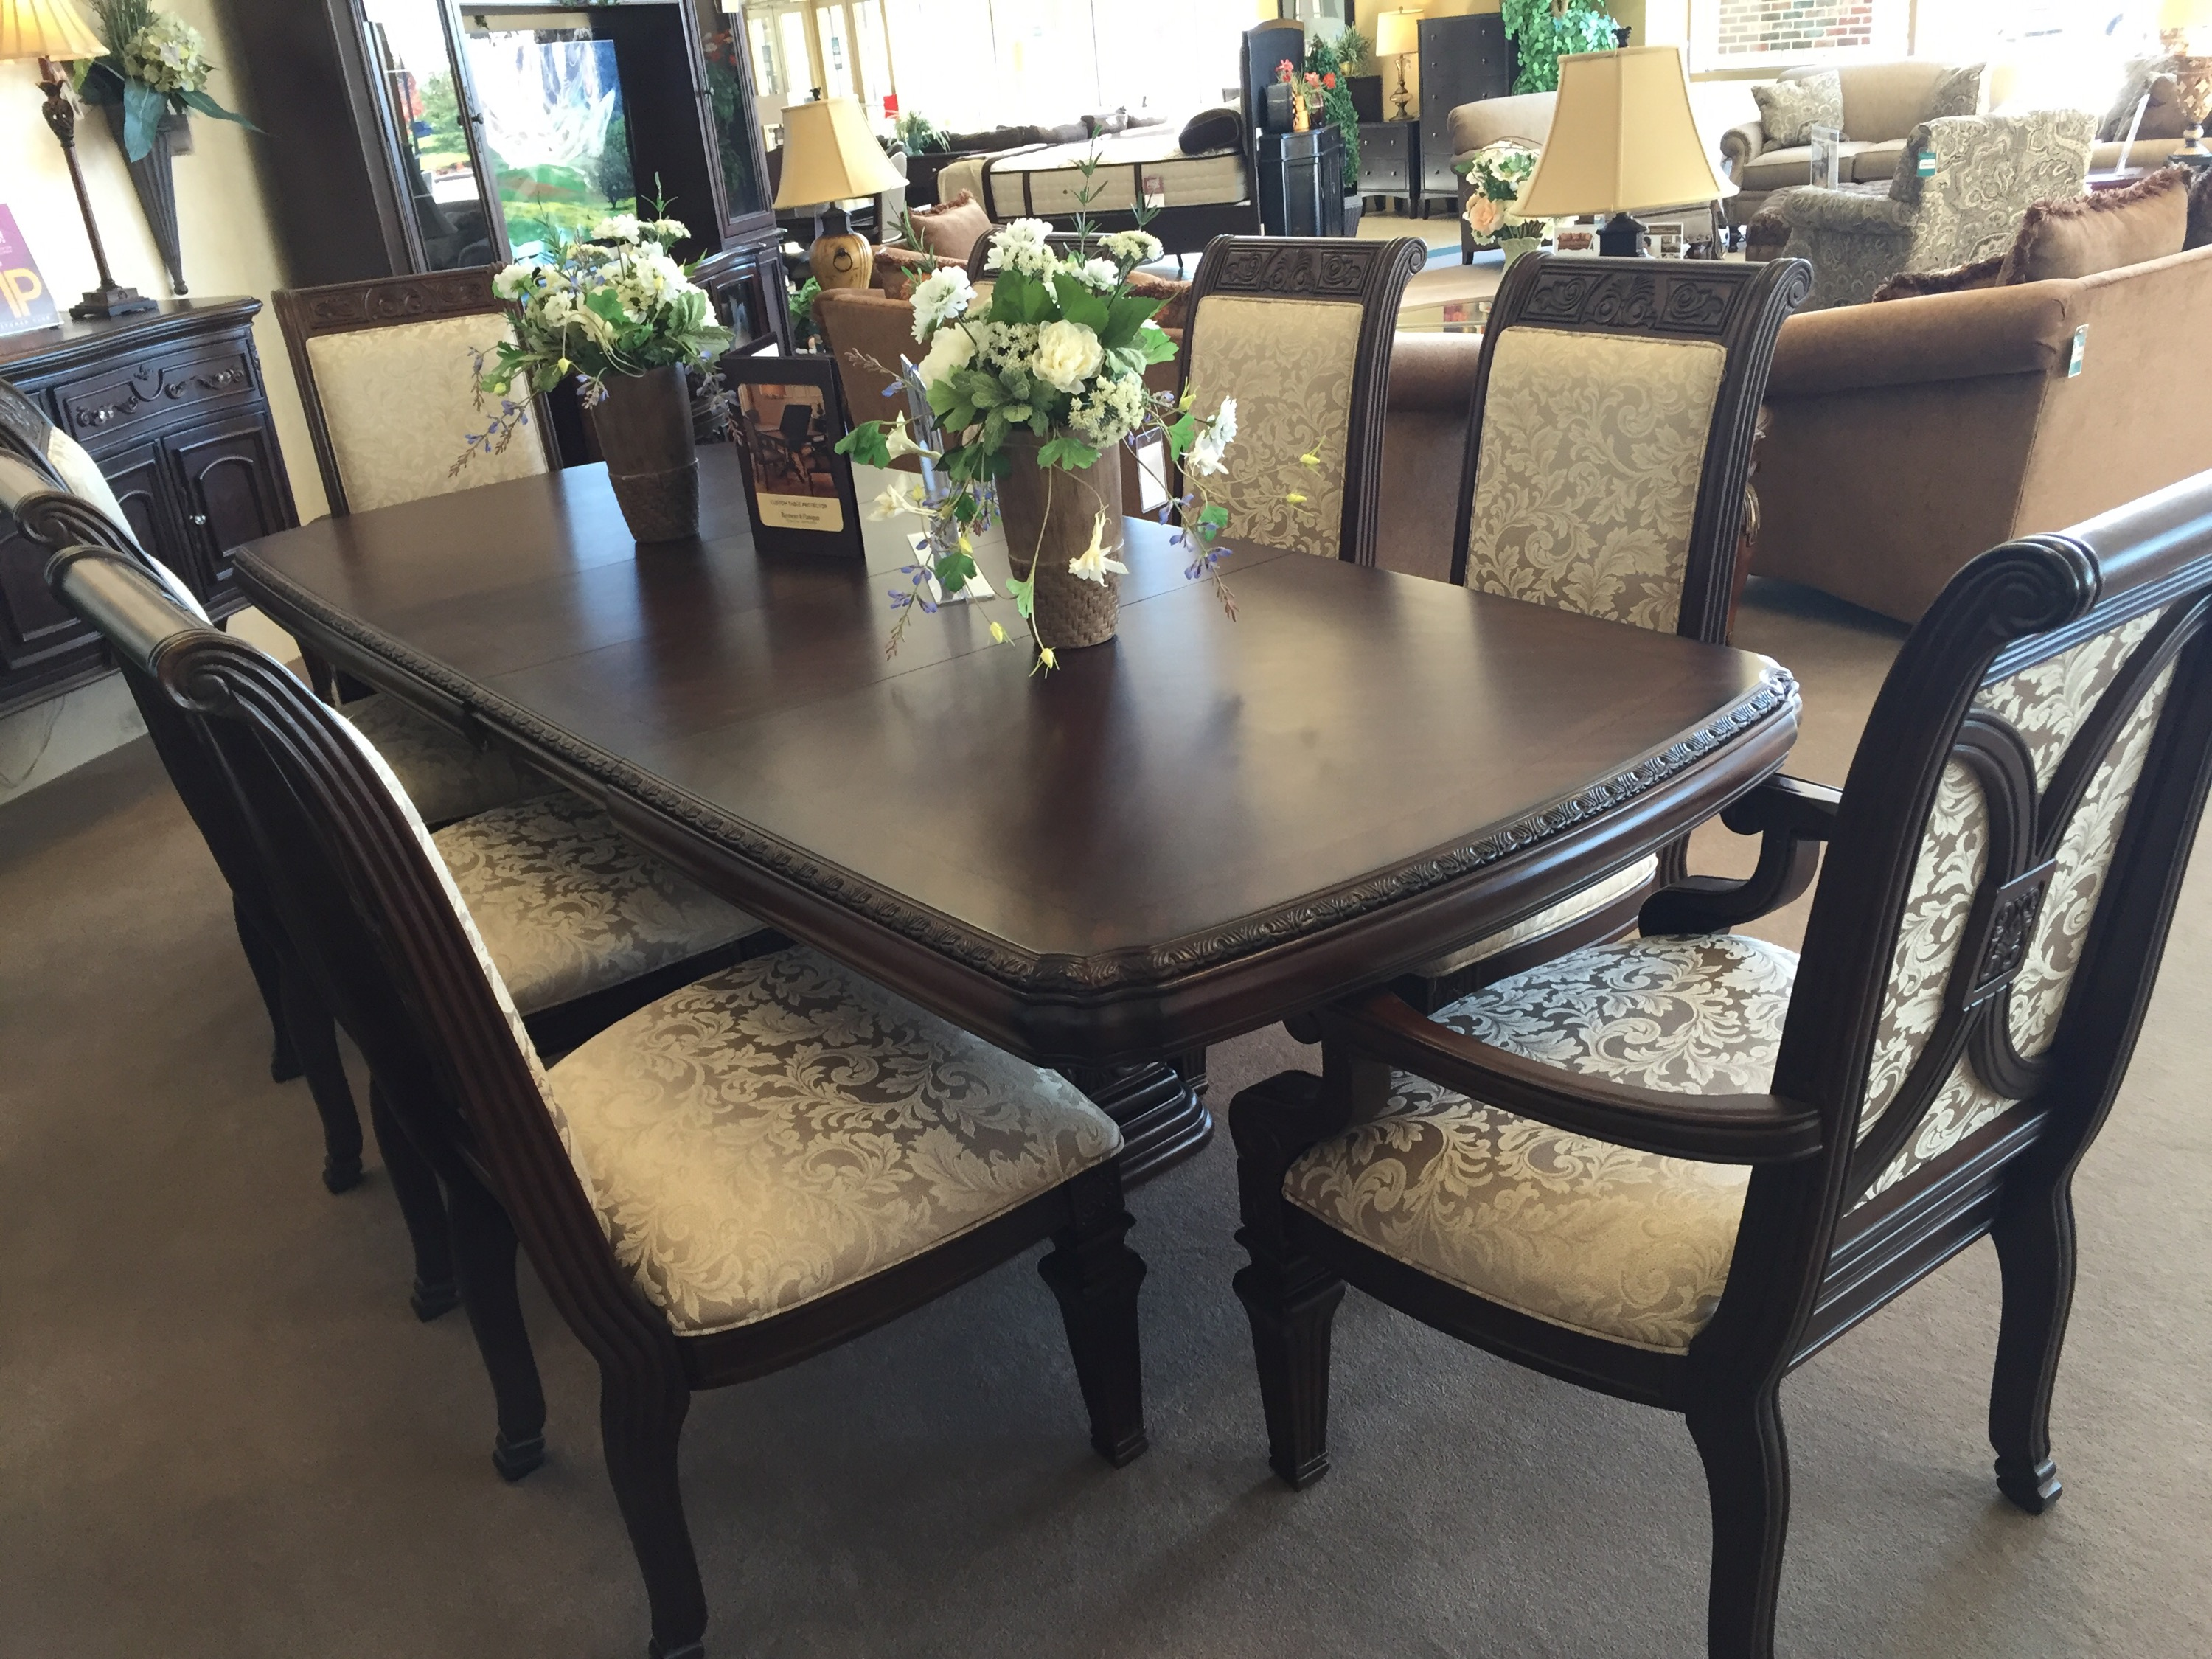 Shopping For My New Dining Room At Raymour & Flanigan